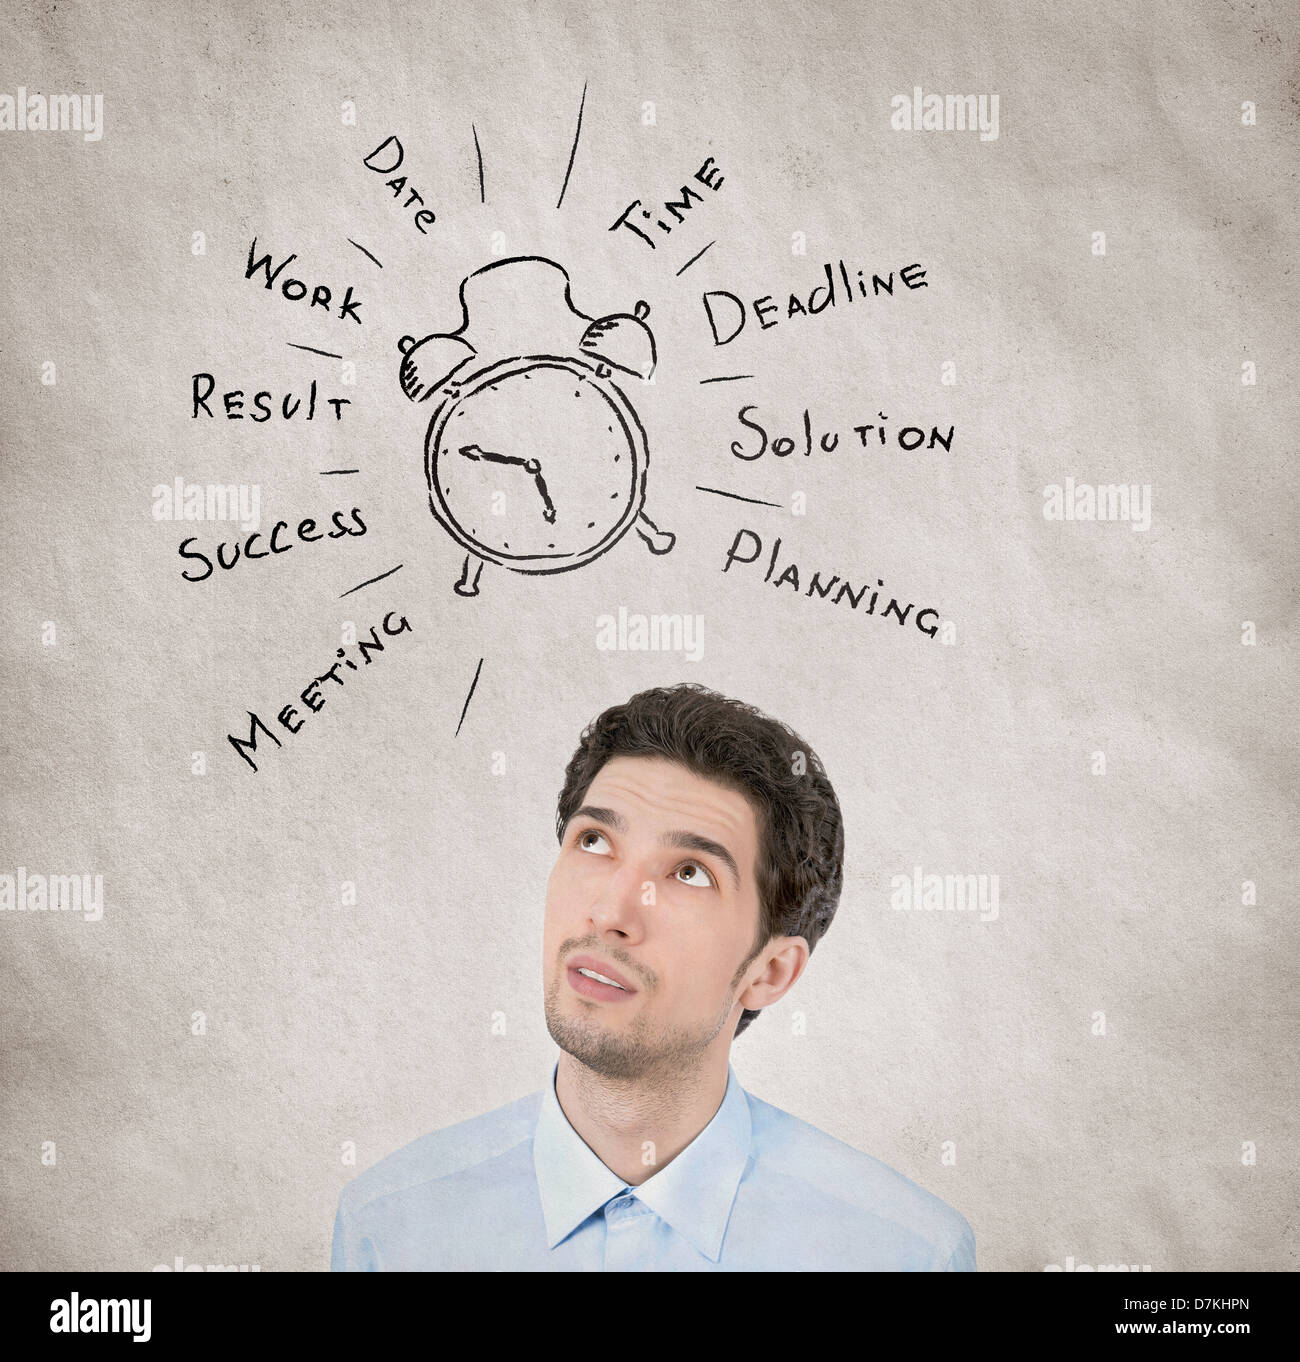 Concept portrait of businessman planning his working day wishes to succeed in personal growth on grunge texture - Stock Image